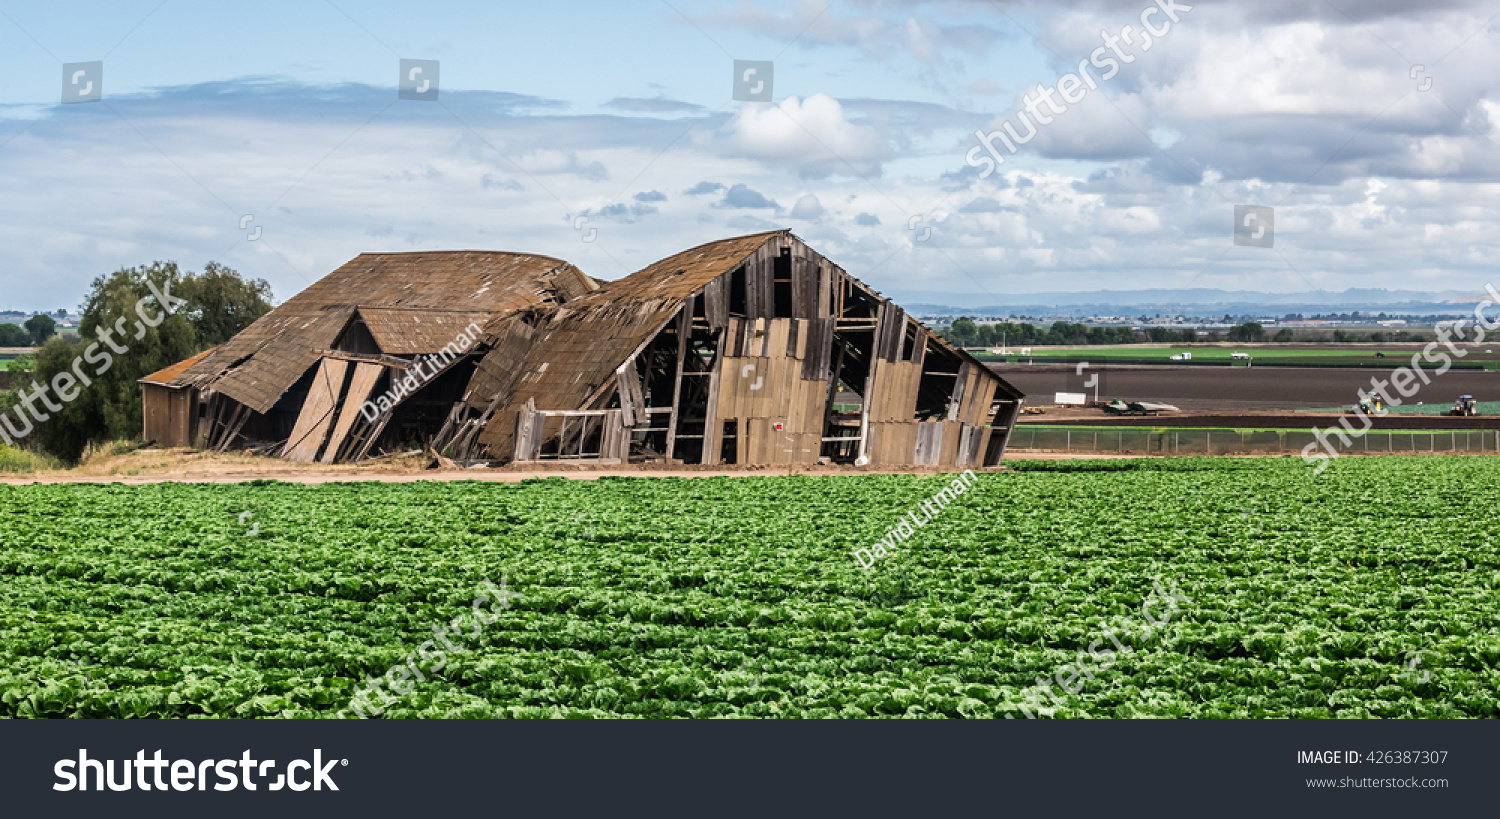 An old abandoned partially collapsed barn stands next to a field of lettuce crops in the Salinas Valley of central California.